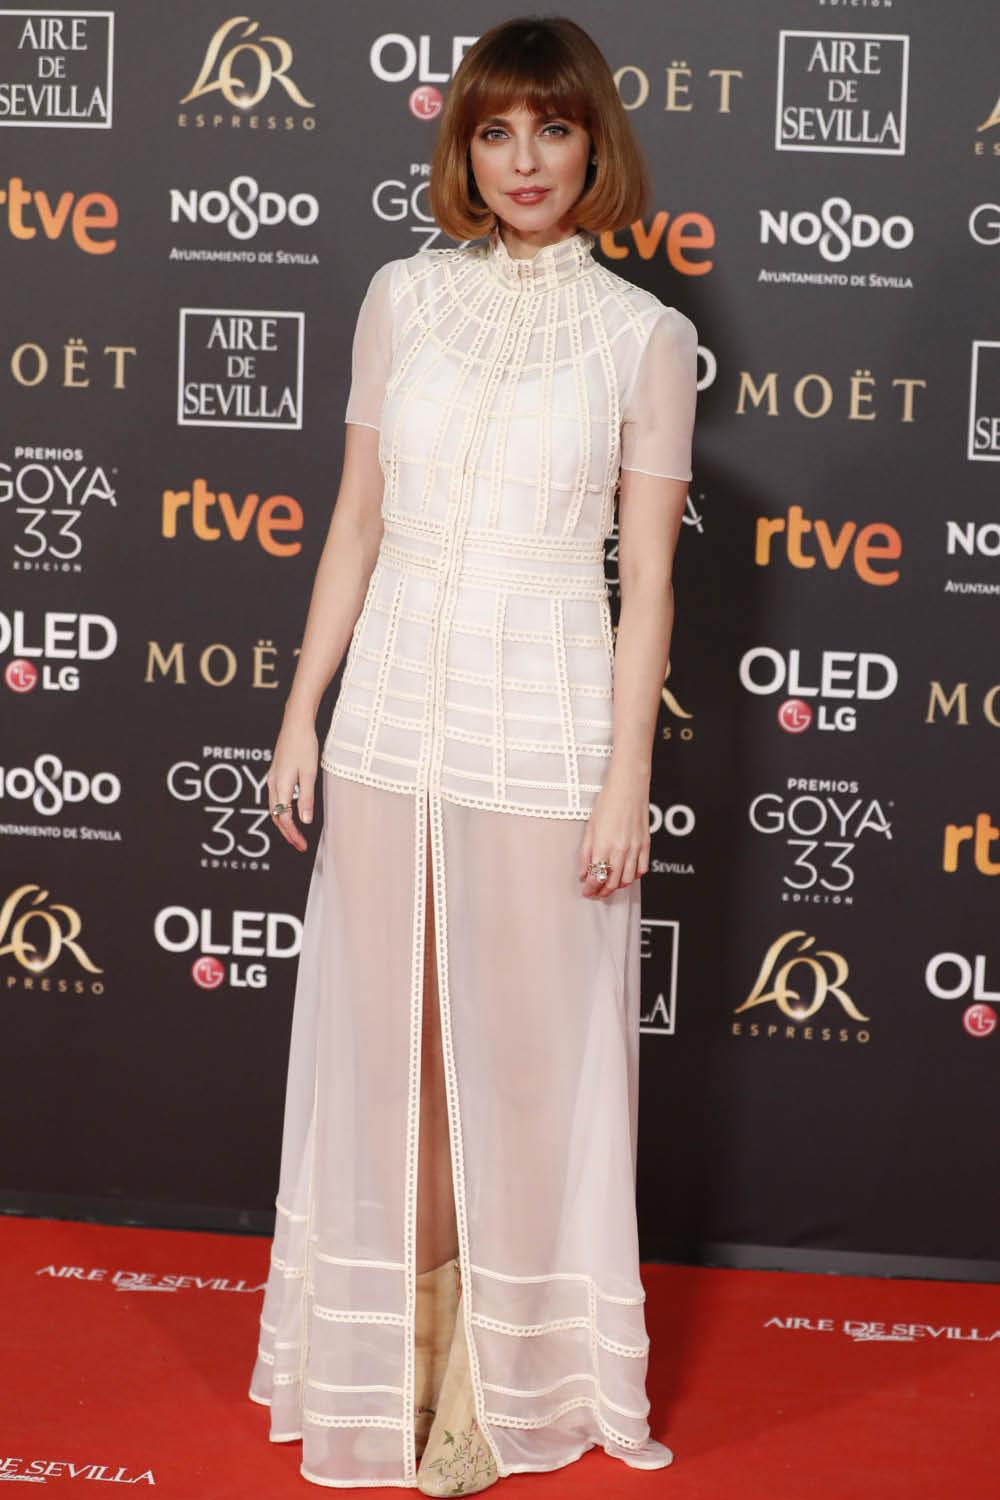 GOYA 2019 Leticia Dolera. Retro chic